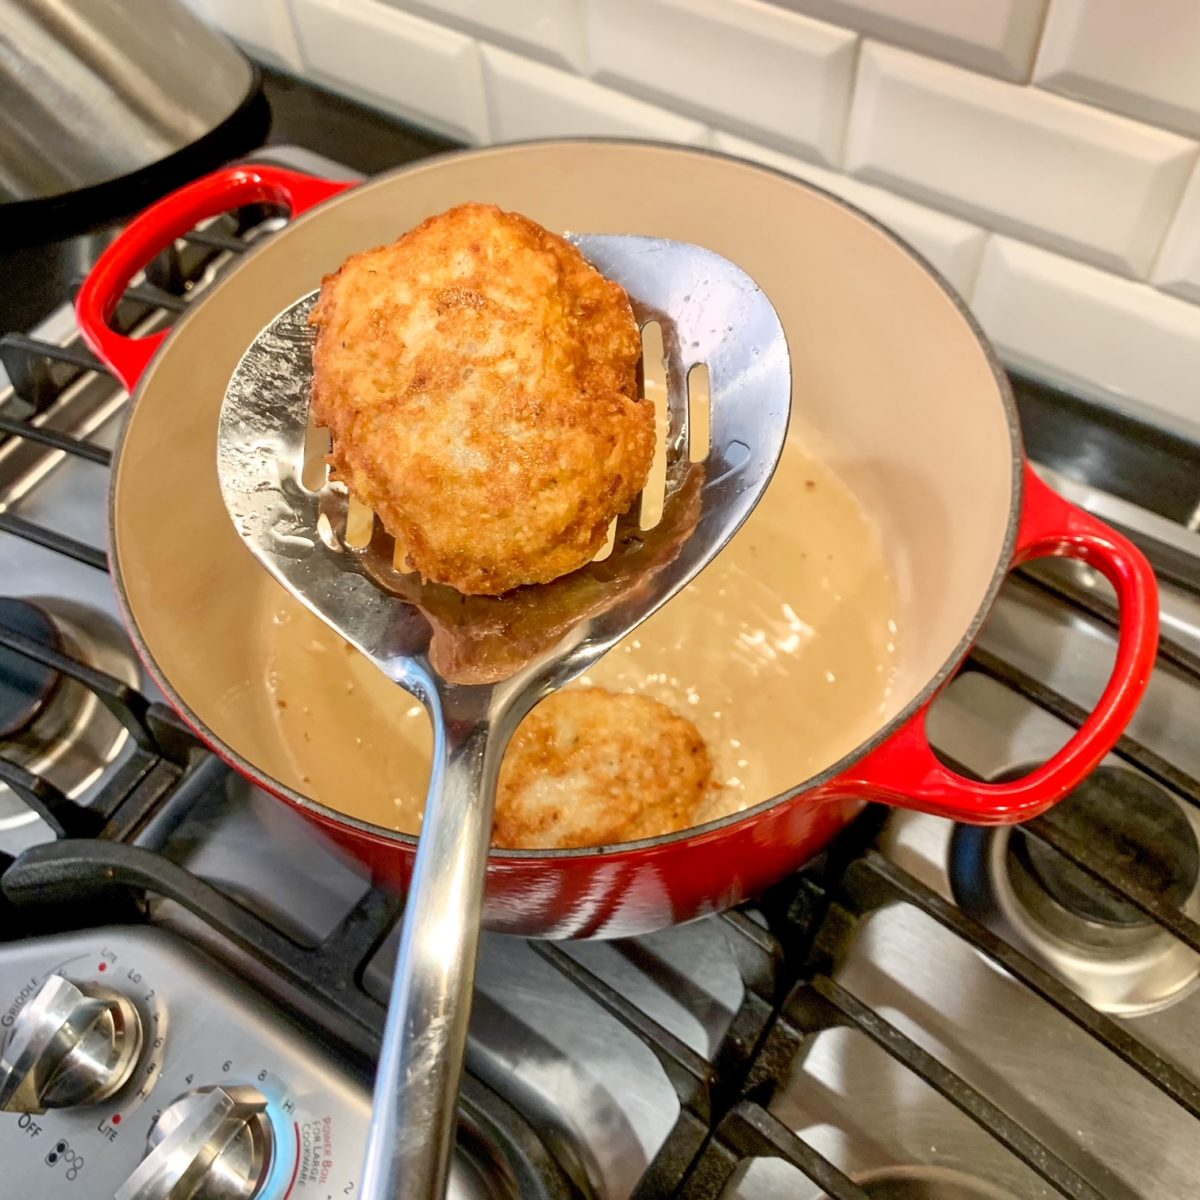 potato latkes with apple from gwyneth paltrow will make your holiday happy!